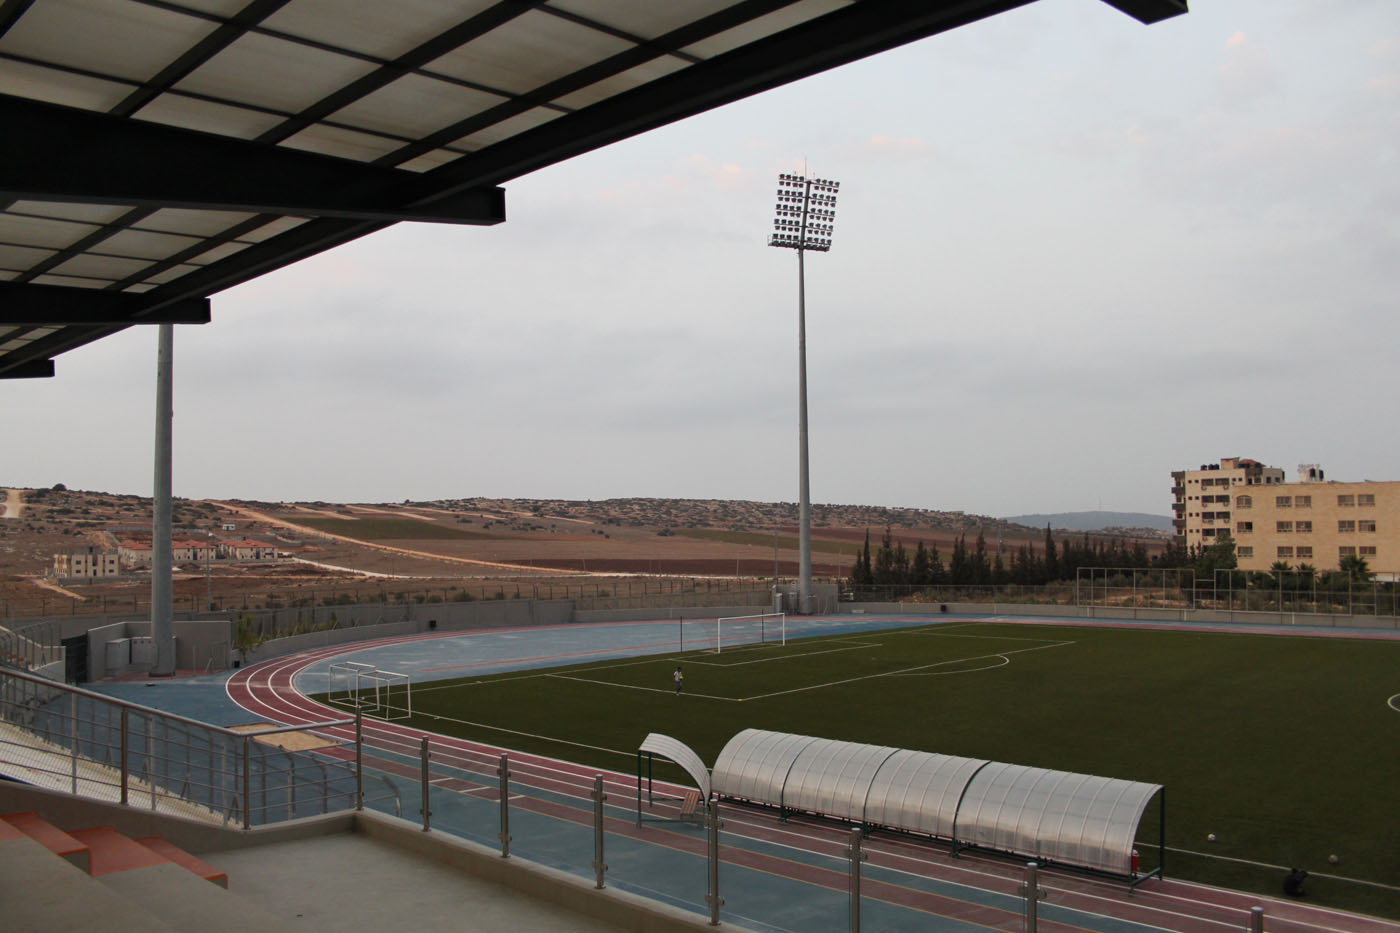 The newest stadium in West Bank. One of only dozen stadiums used by about 70 thousand Palestinian footballers and home to Jenin FC.